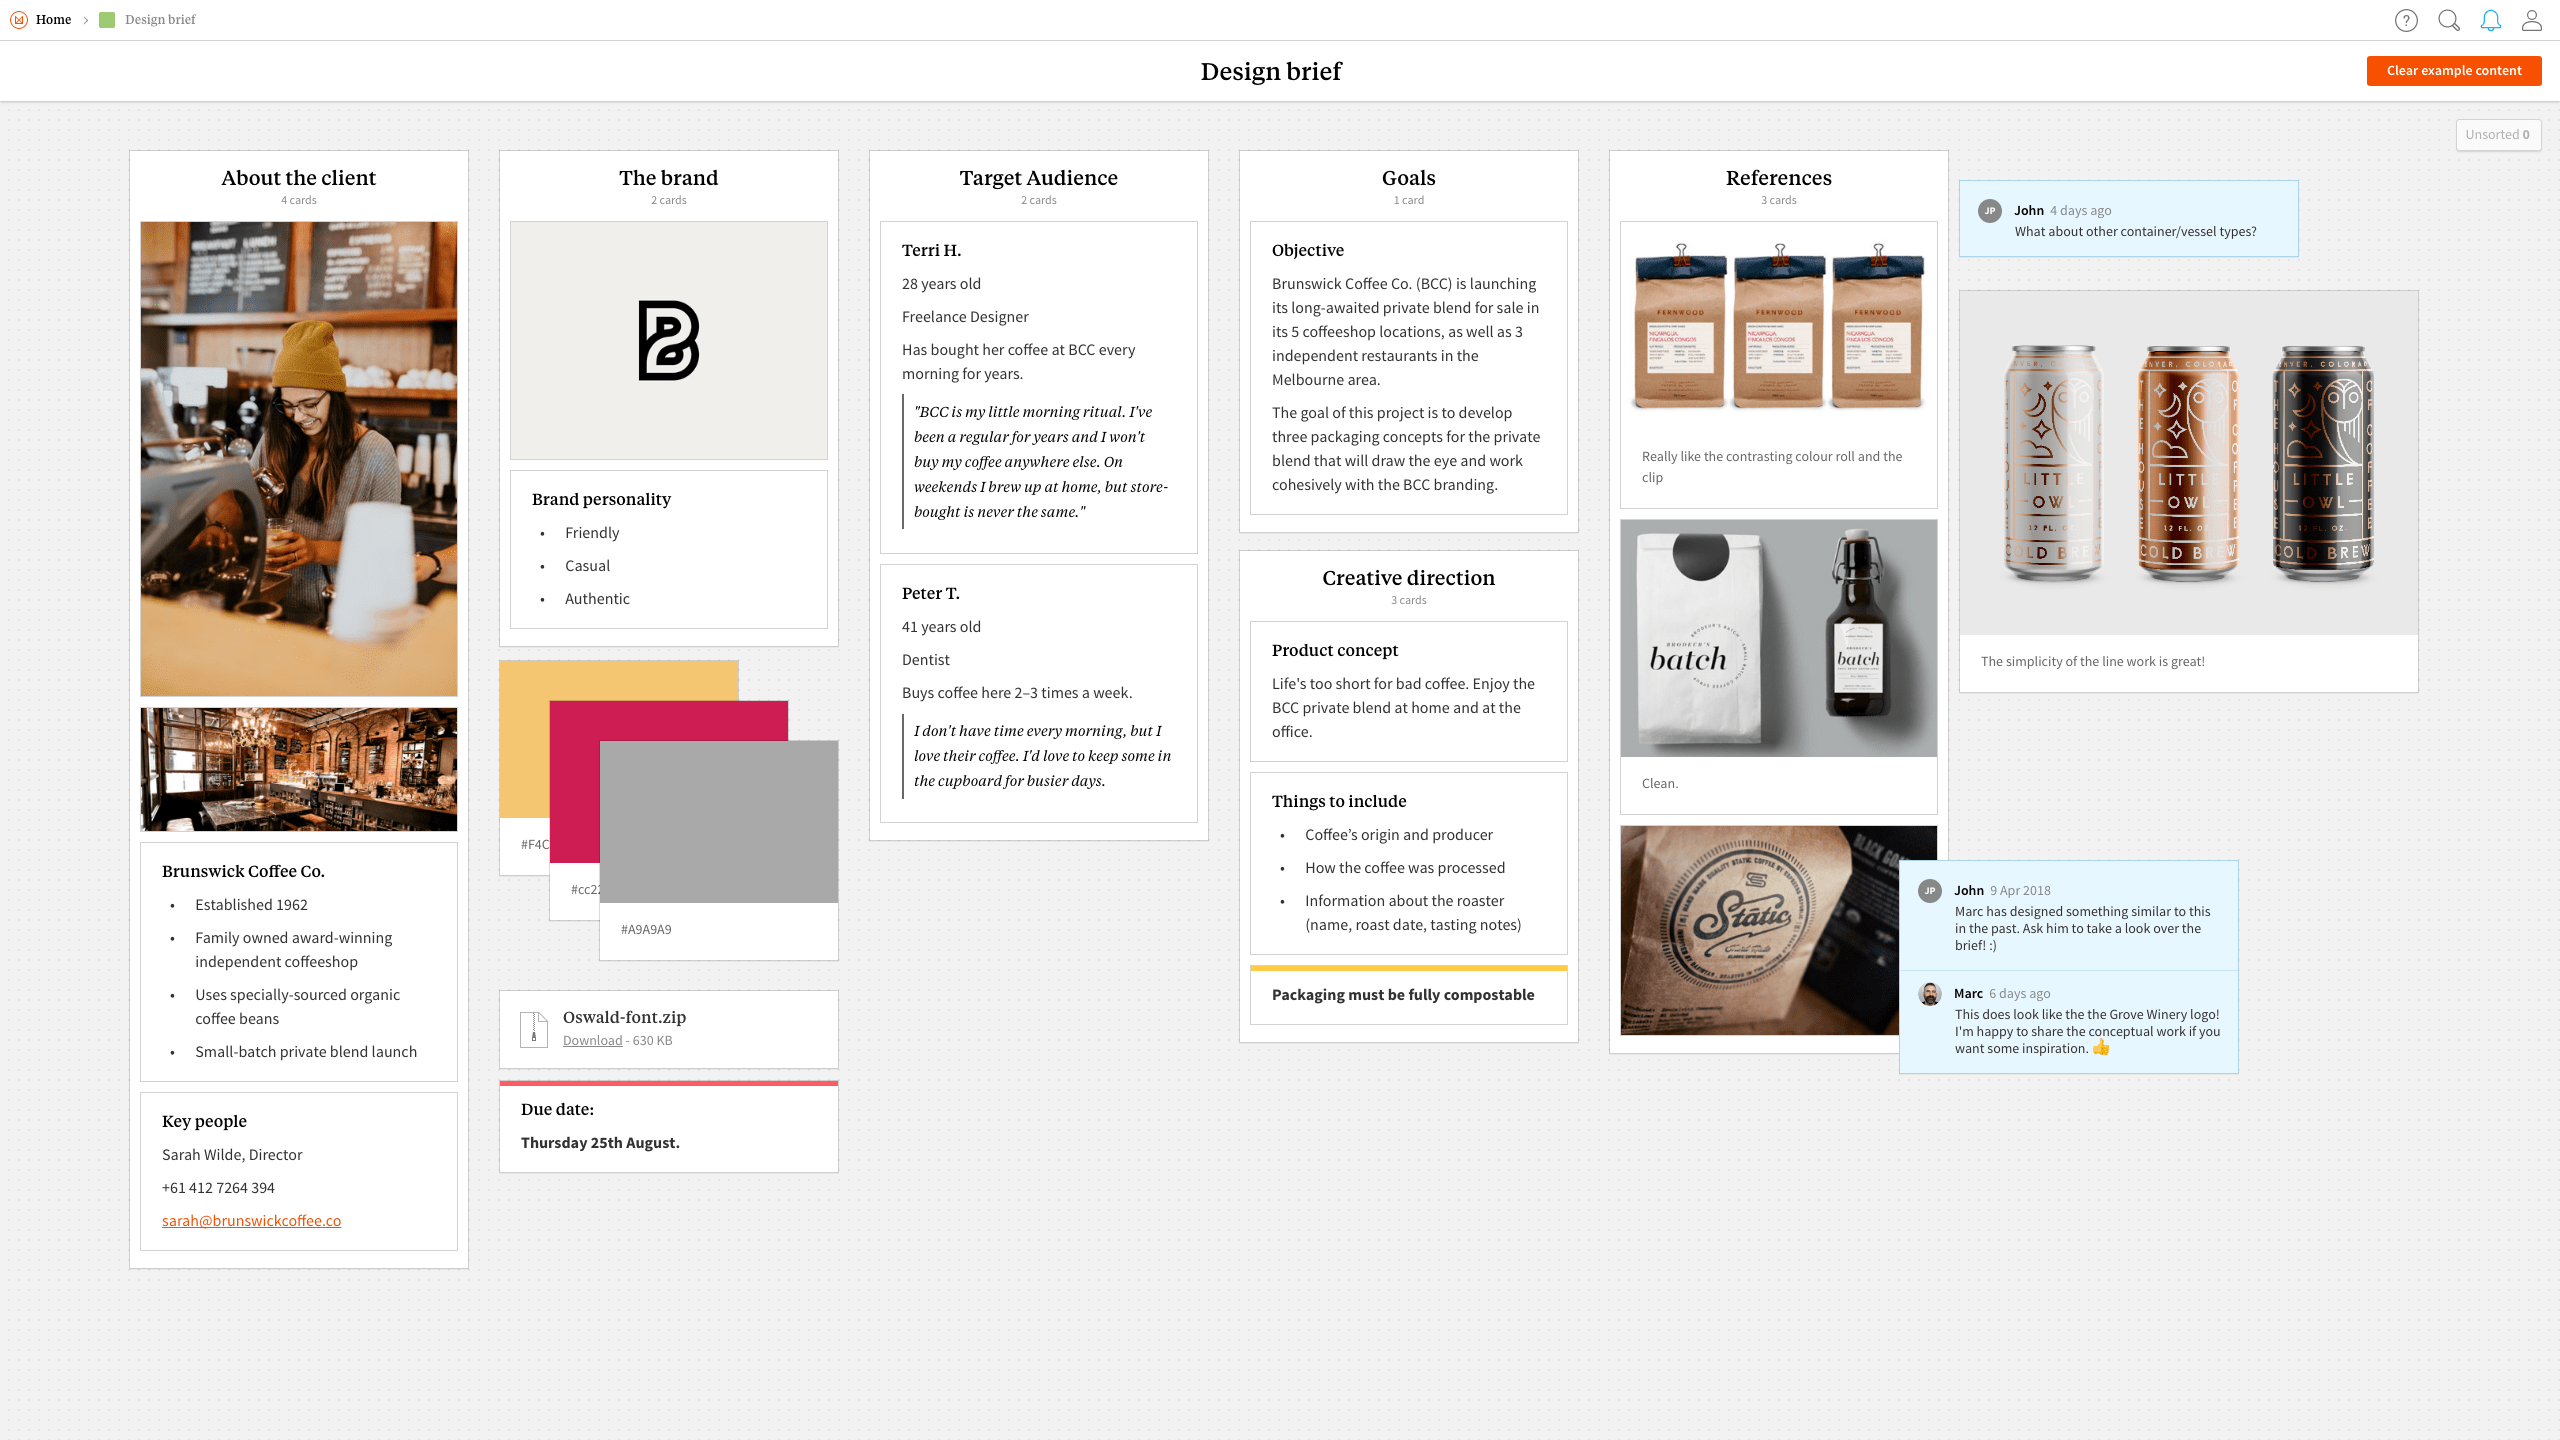 Completed Design Brief template in Milanote app